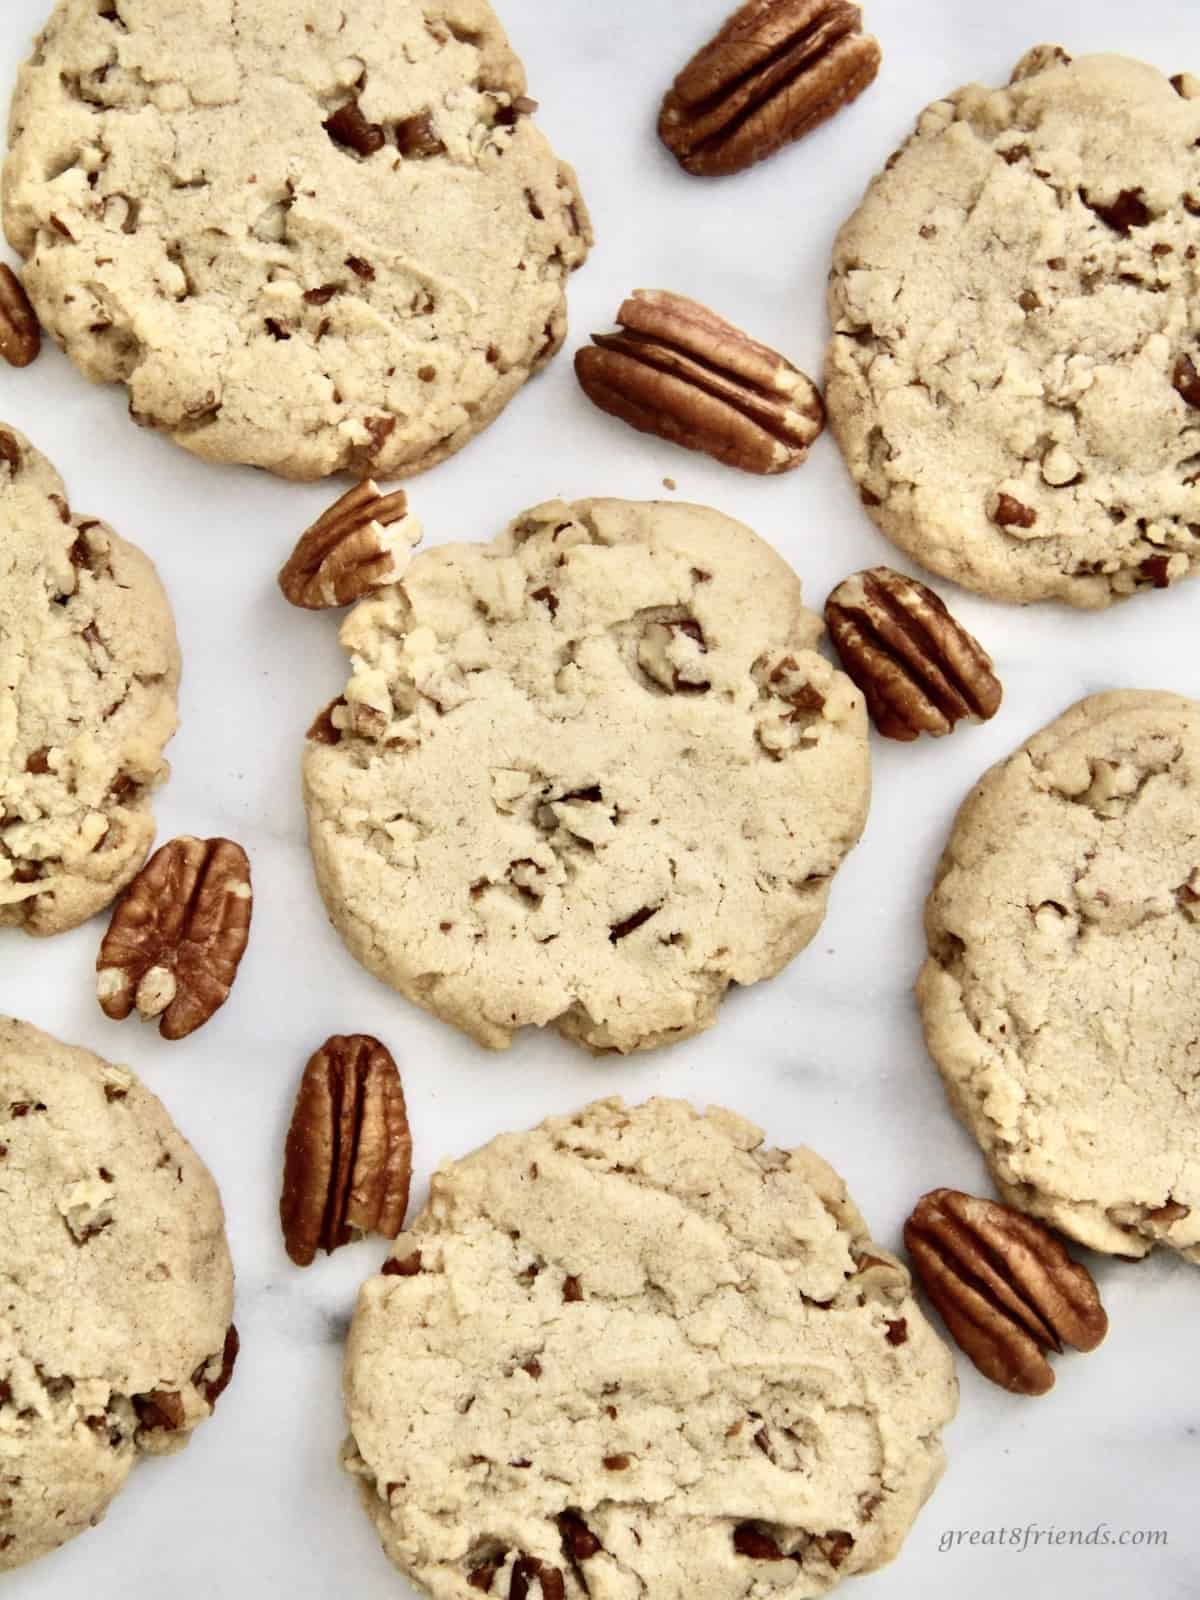 Pecan Sandies cookies on a white marble surface with a few whole pecans alongside the cookies.